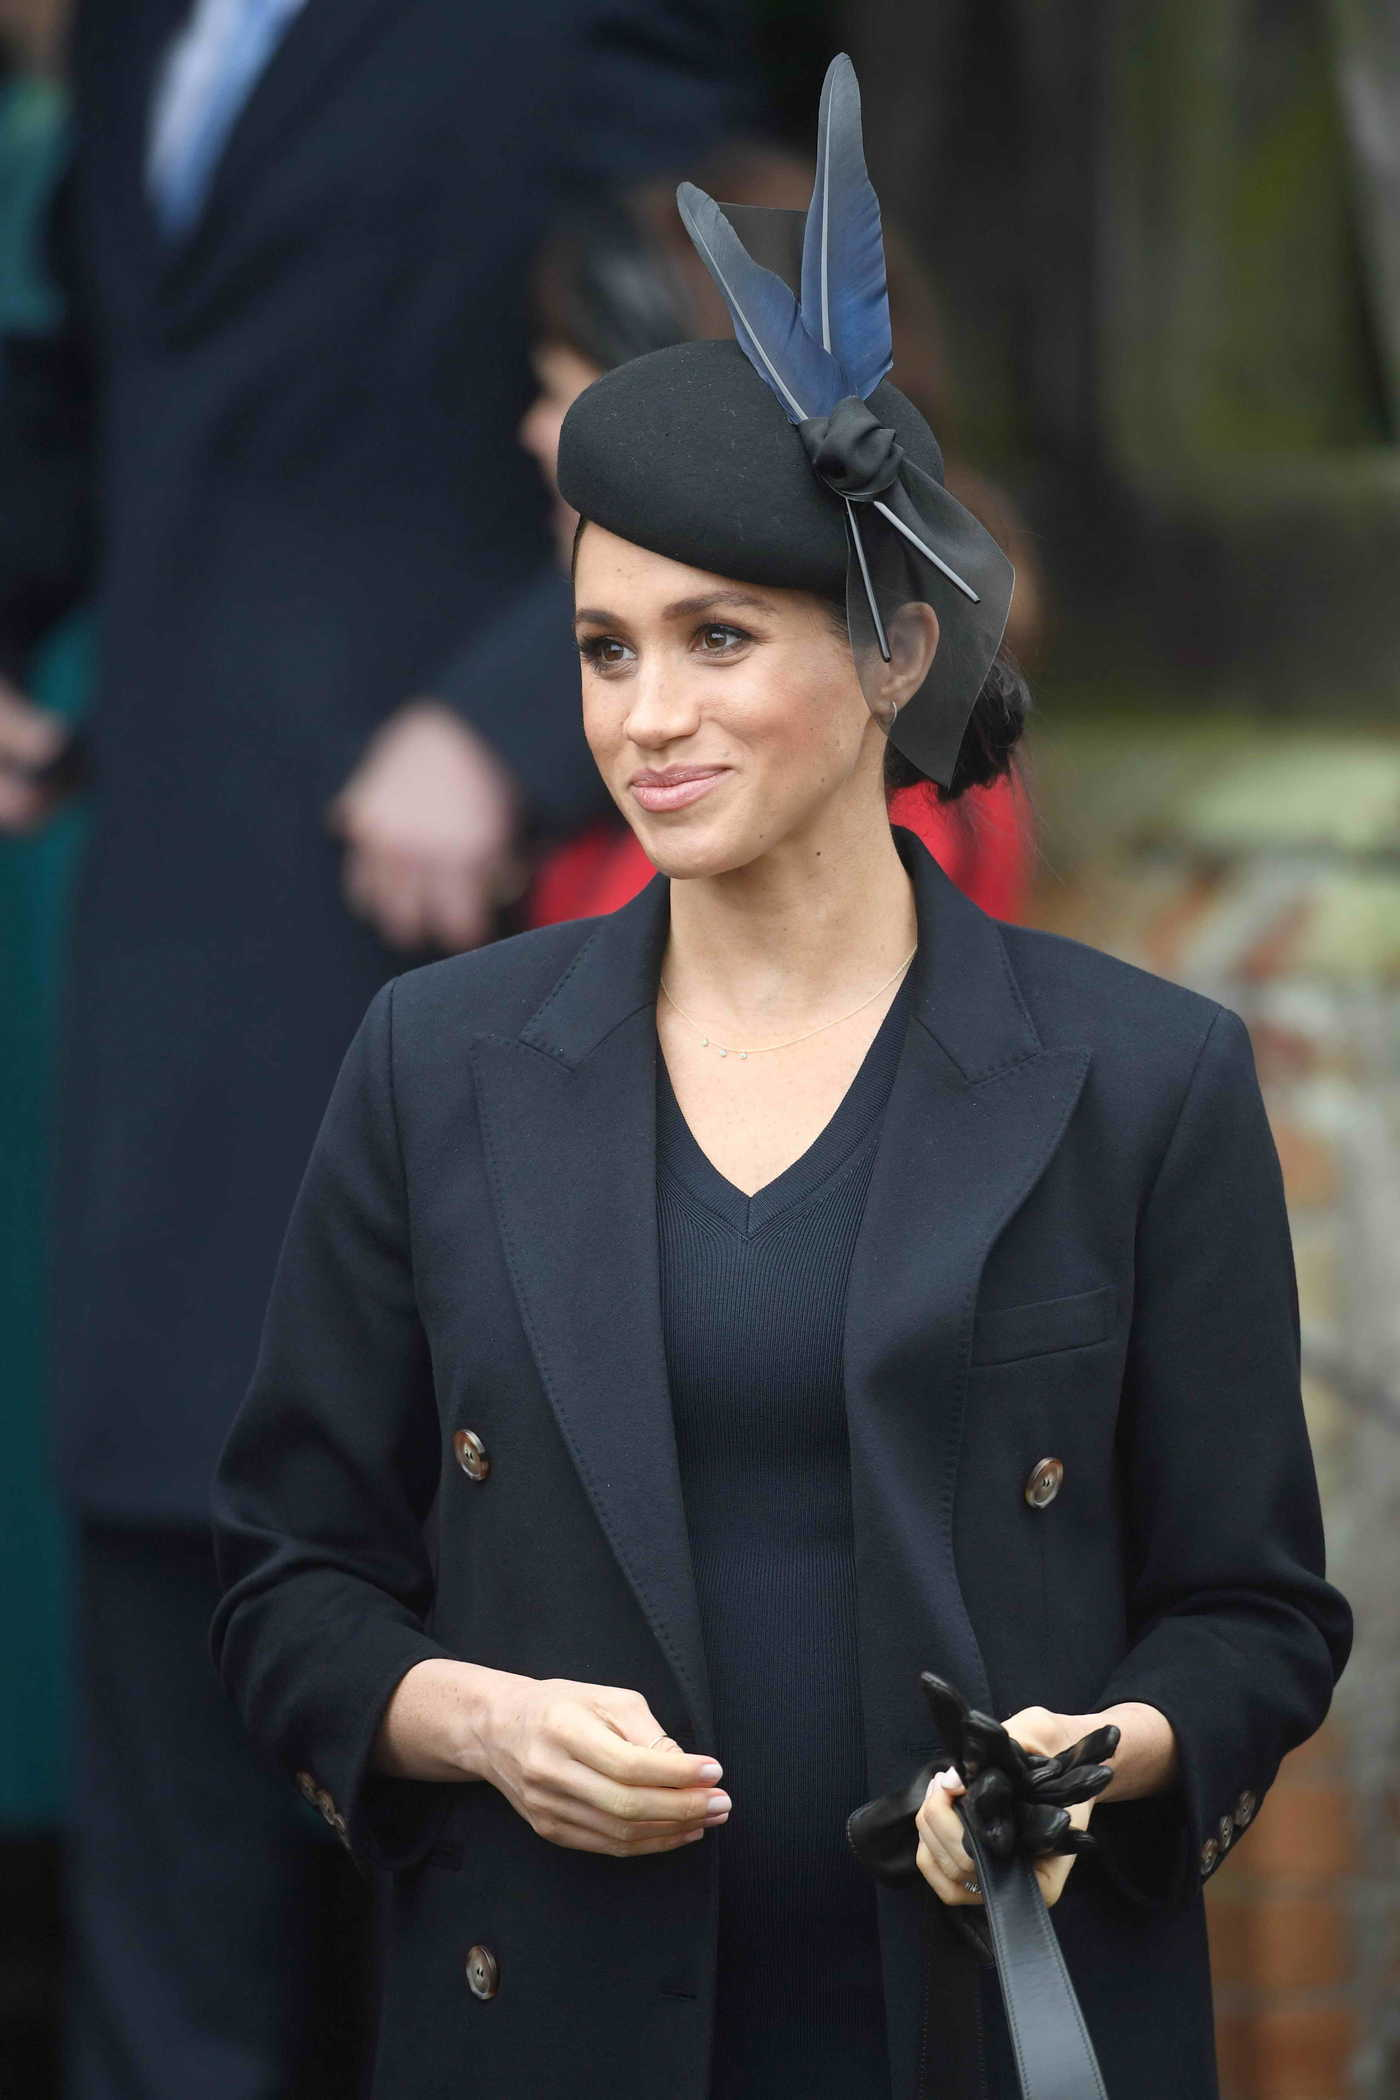 Meghan Markle Attends Christmas Day Church Service in King's Lynn 12/25/2018